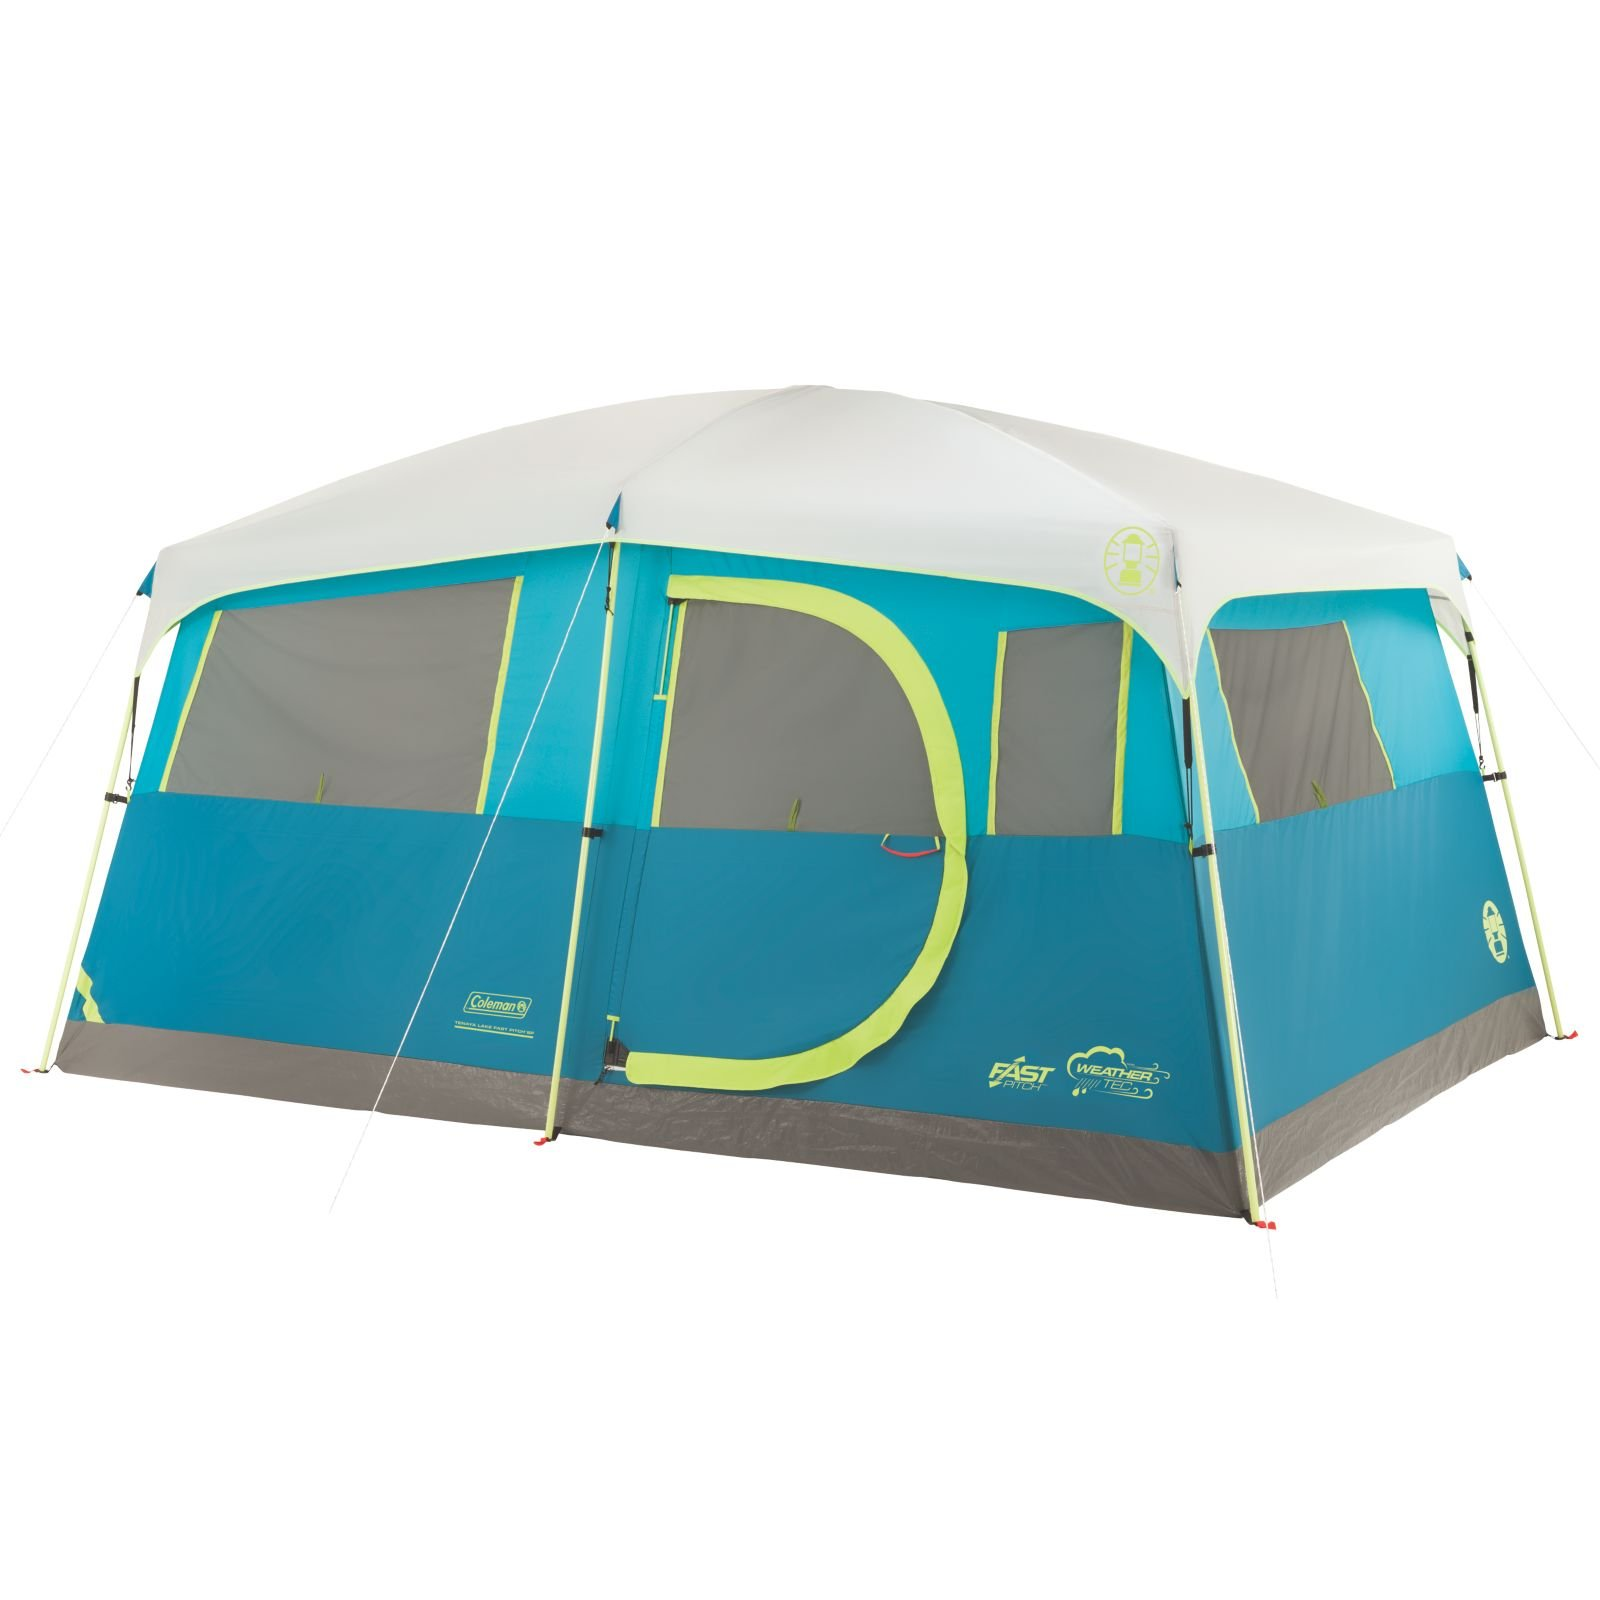 Coleman Tenaya Lake Fast Pitch 8-Person Cabin Tent with Closet by Coleman (Image #1)